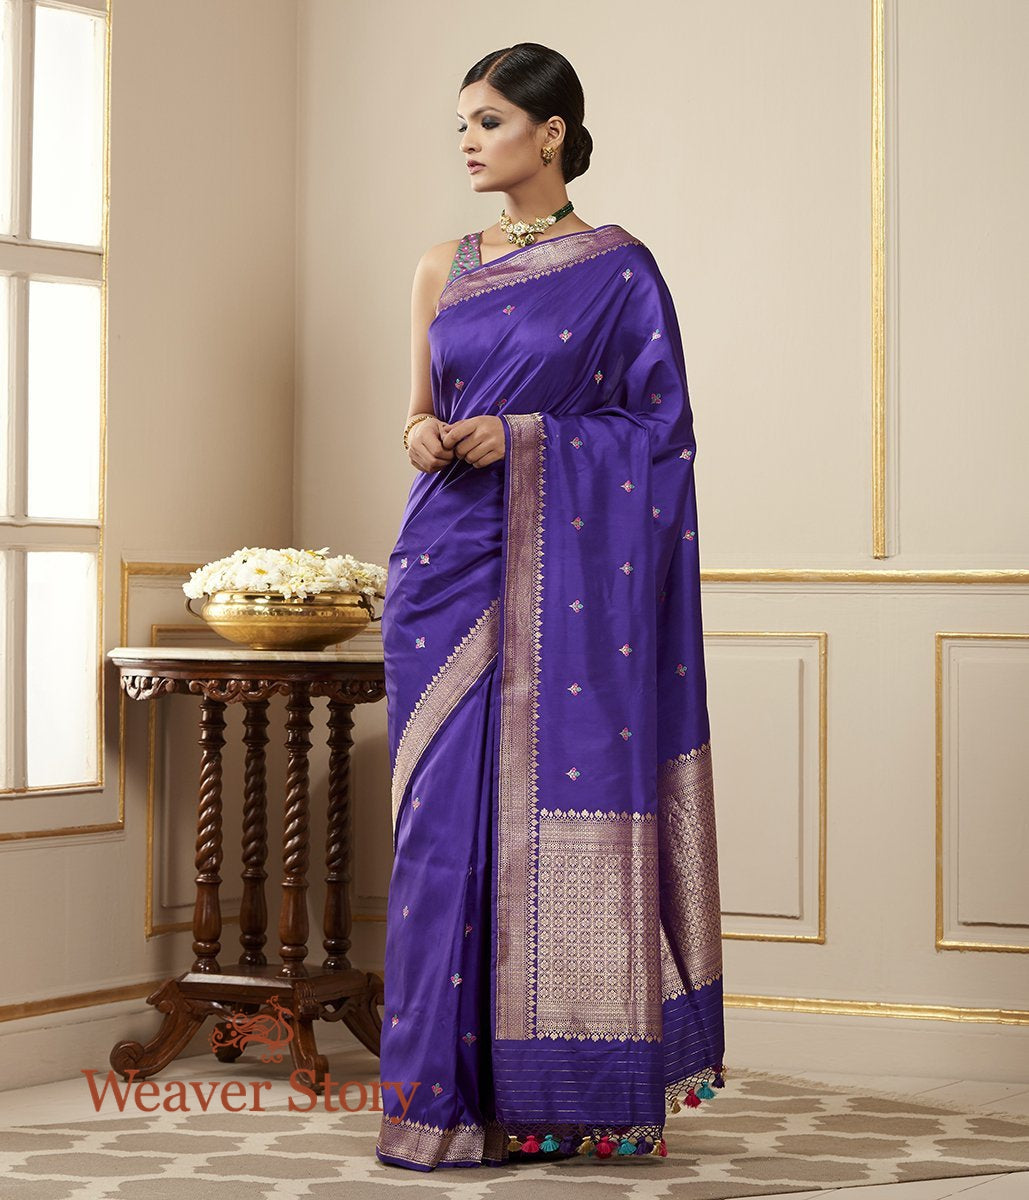 Handwoven Purple Katan Silk Banarasi Saree with Meenakari Booti